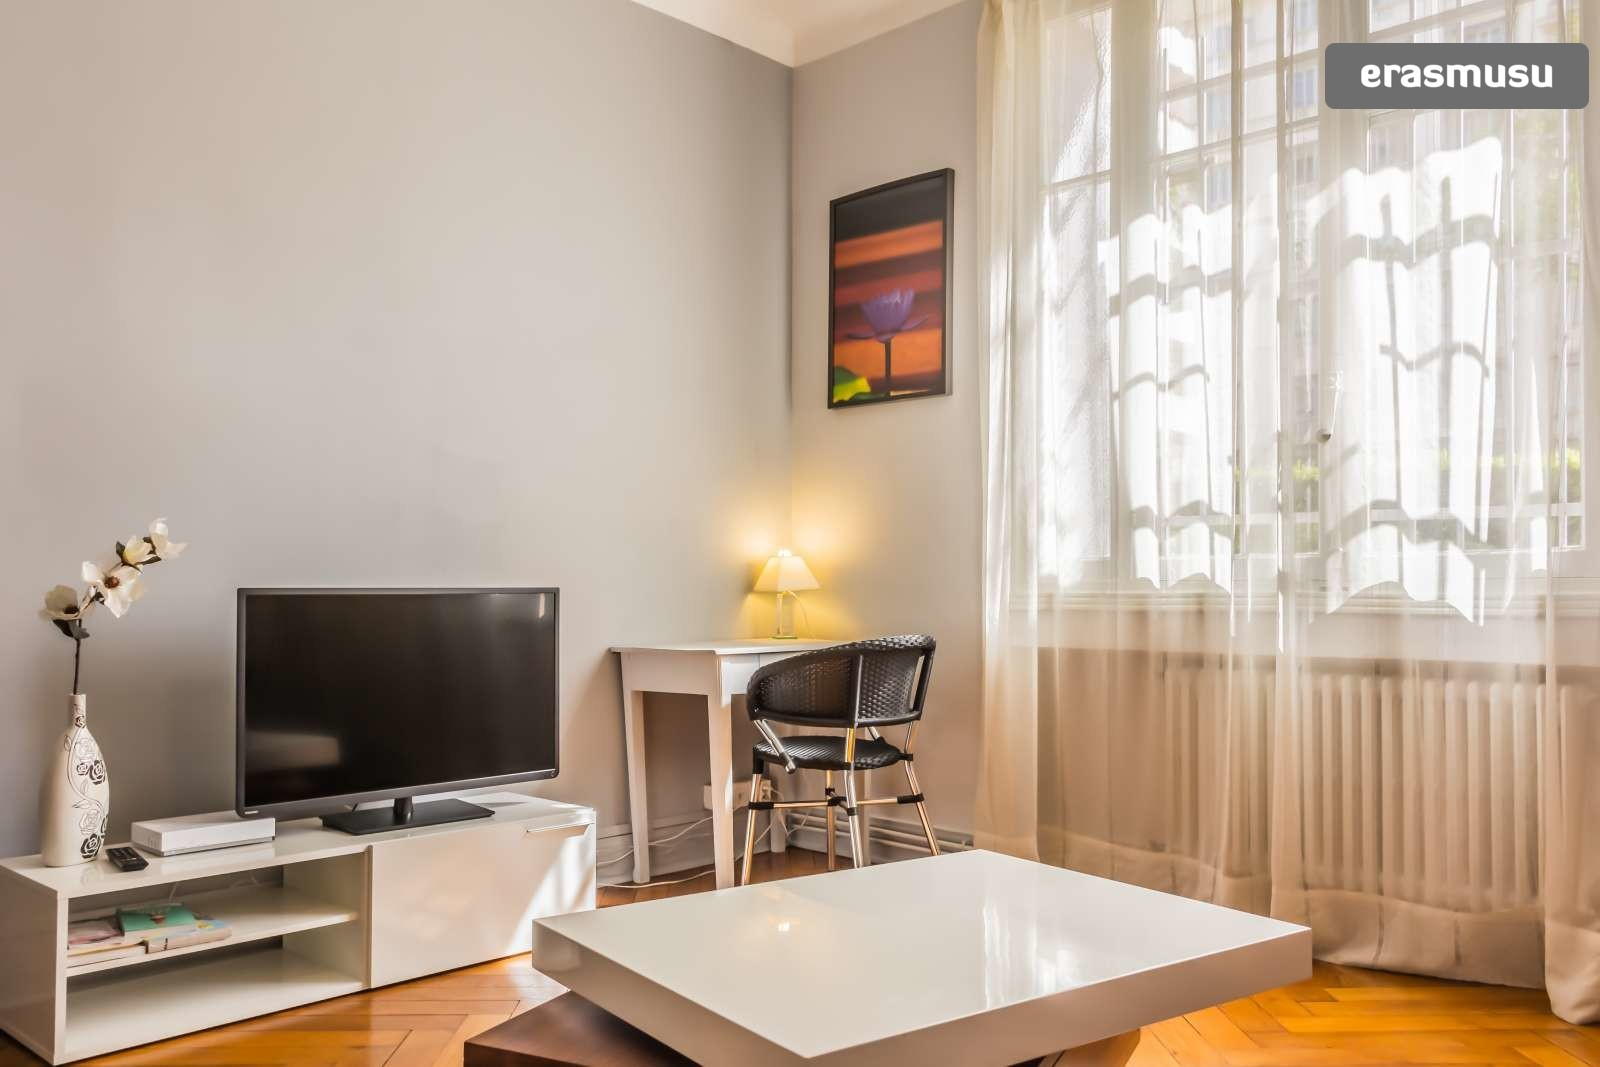 luxurious-fully-furnished-1-bedroom-apartment-rent-c125dc85a3ffe